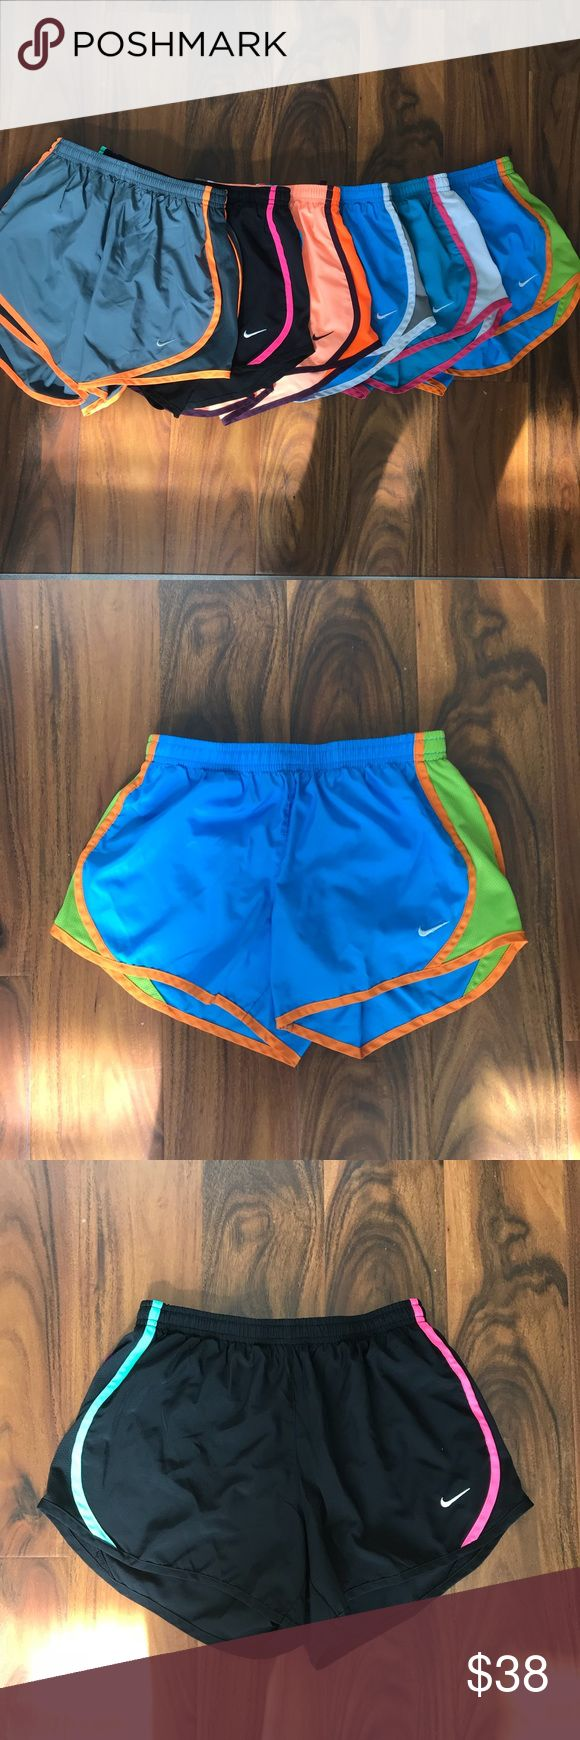 Shorts bundle The black and orange shorts are a kids large. the blue ones are kids medium. These will fit you if you're a women's size XS or a 2 in Lululemon shorts. The grey ones are a women's XS!! Nike Bottoms Shorts